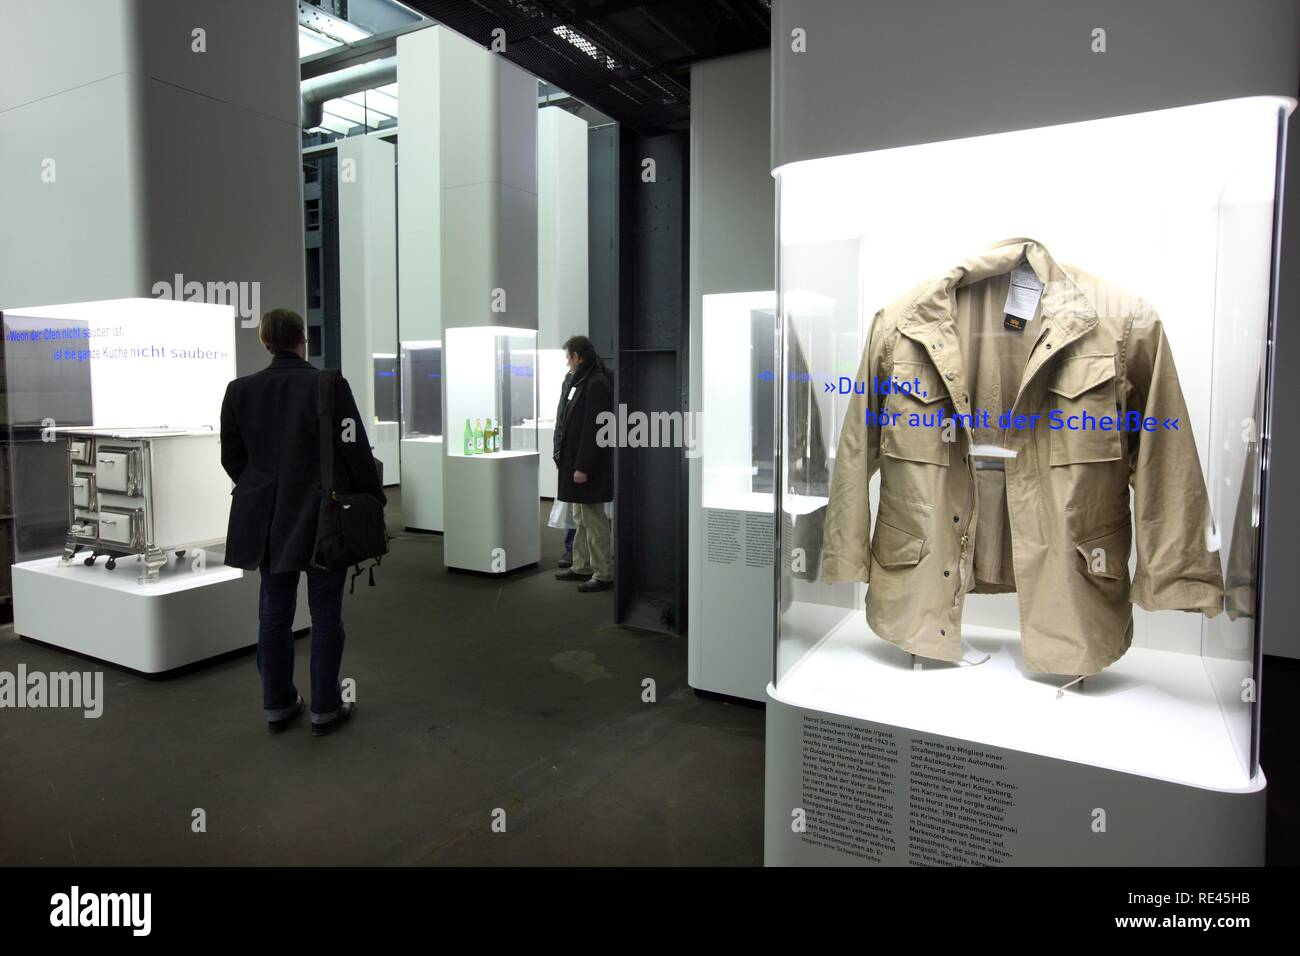 The jacket of the Tatort detective inspector Horst Schimanski, Schimi, in the new Ruhrmuseum museum, opened in January 2010, - Stock Image